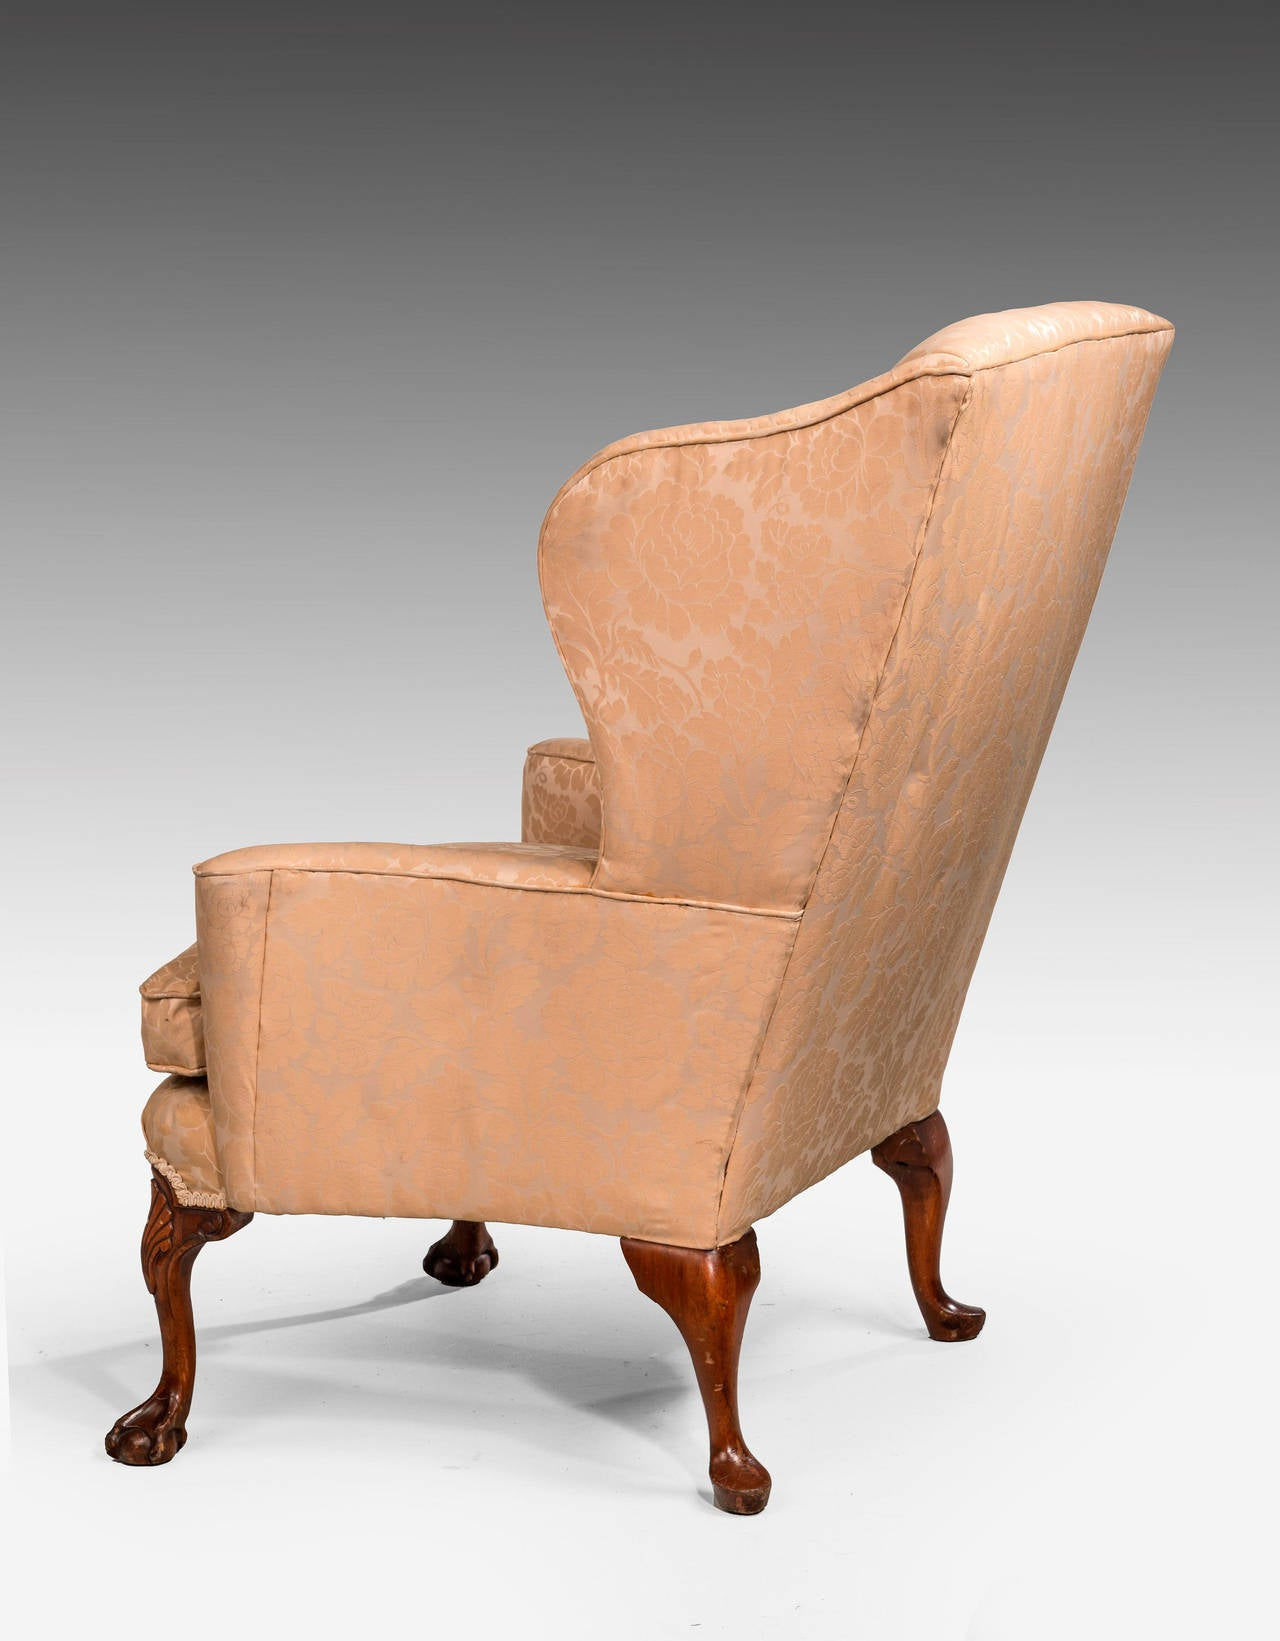 George II Design Walnut-Framed Wing Chair For Sale 1